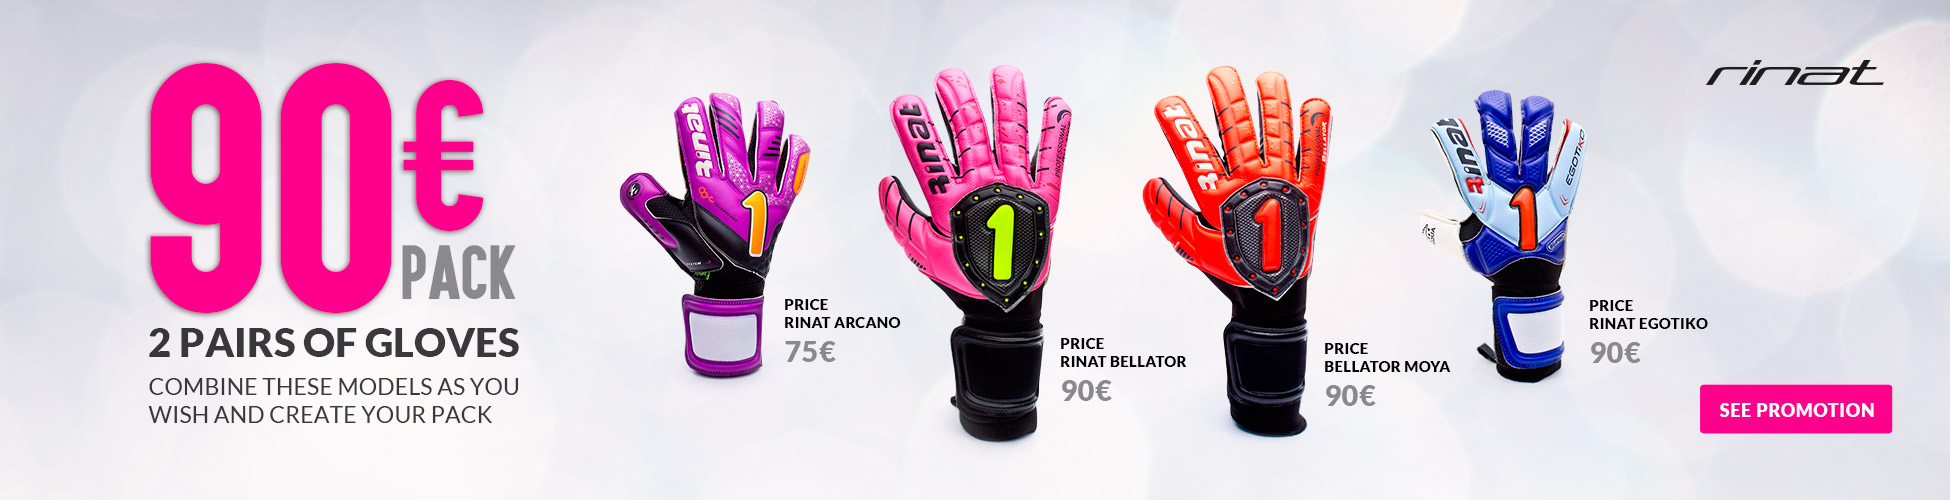 2 Pairs of gloves Rinat 90€